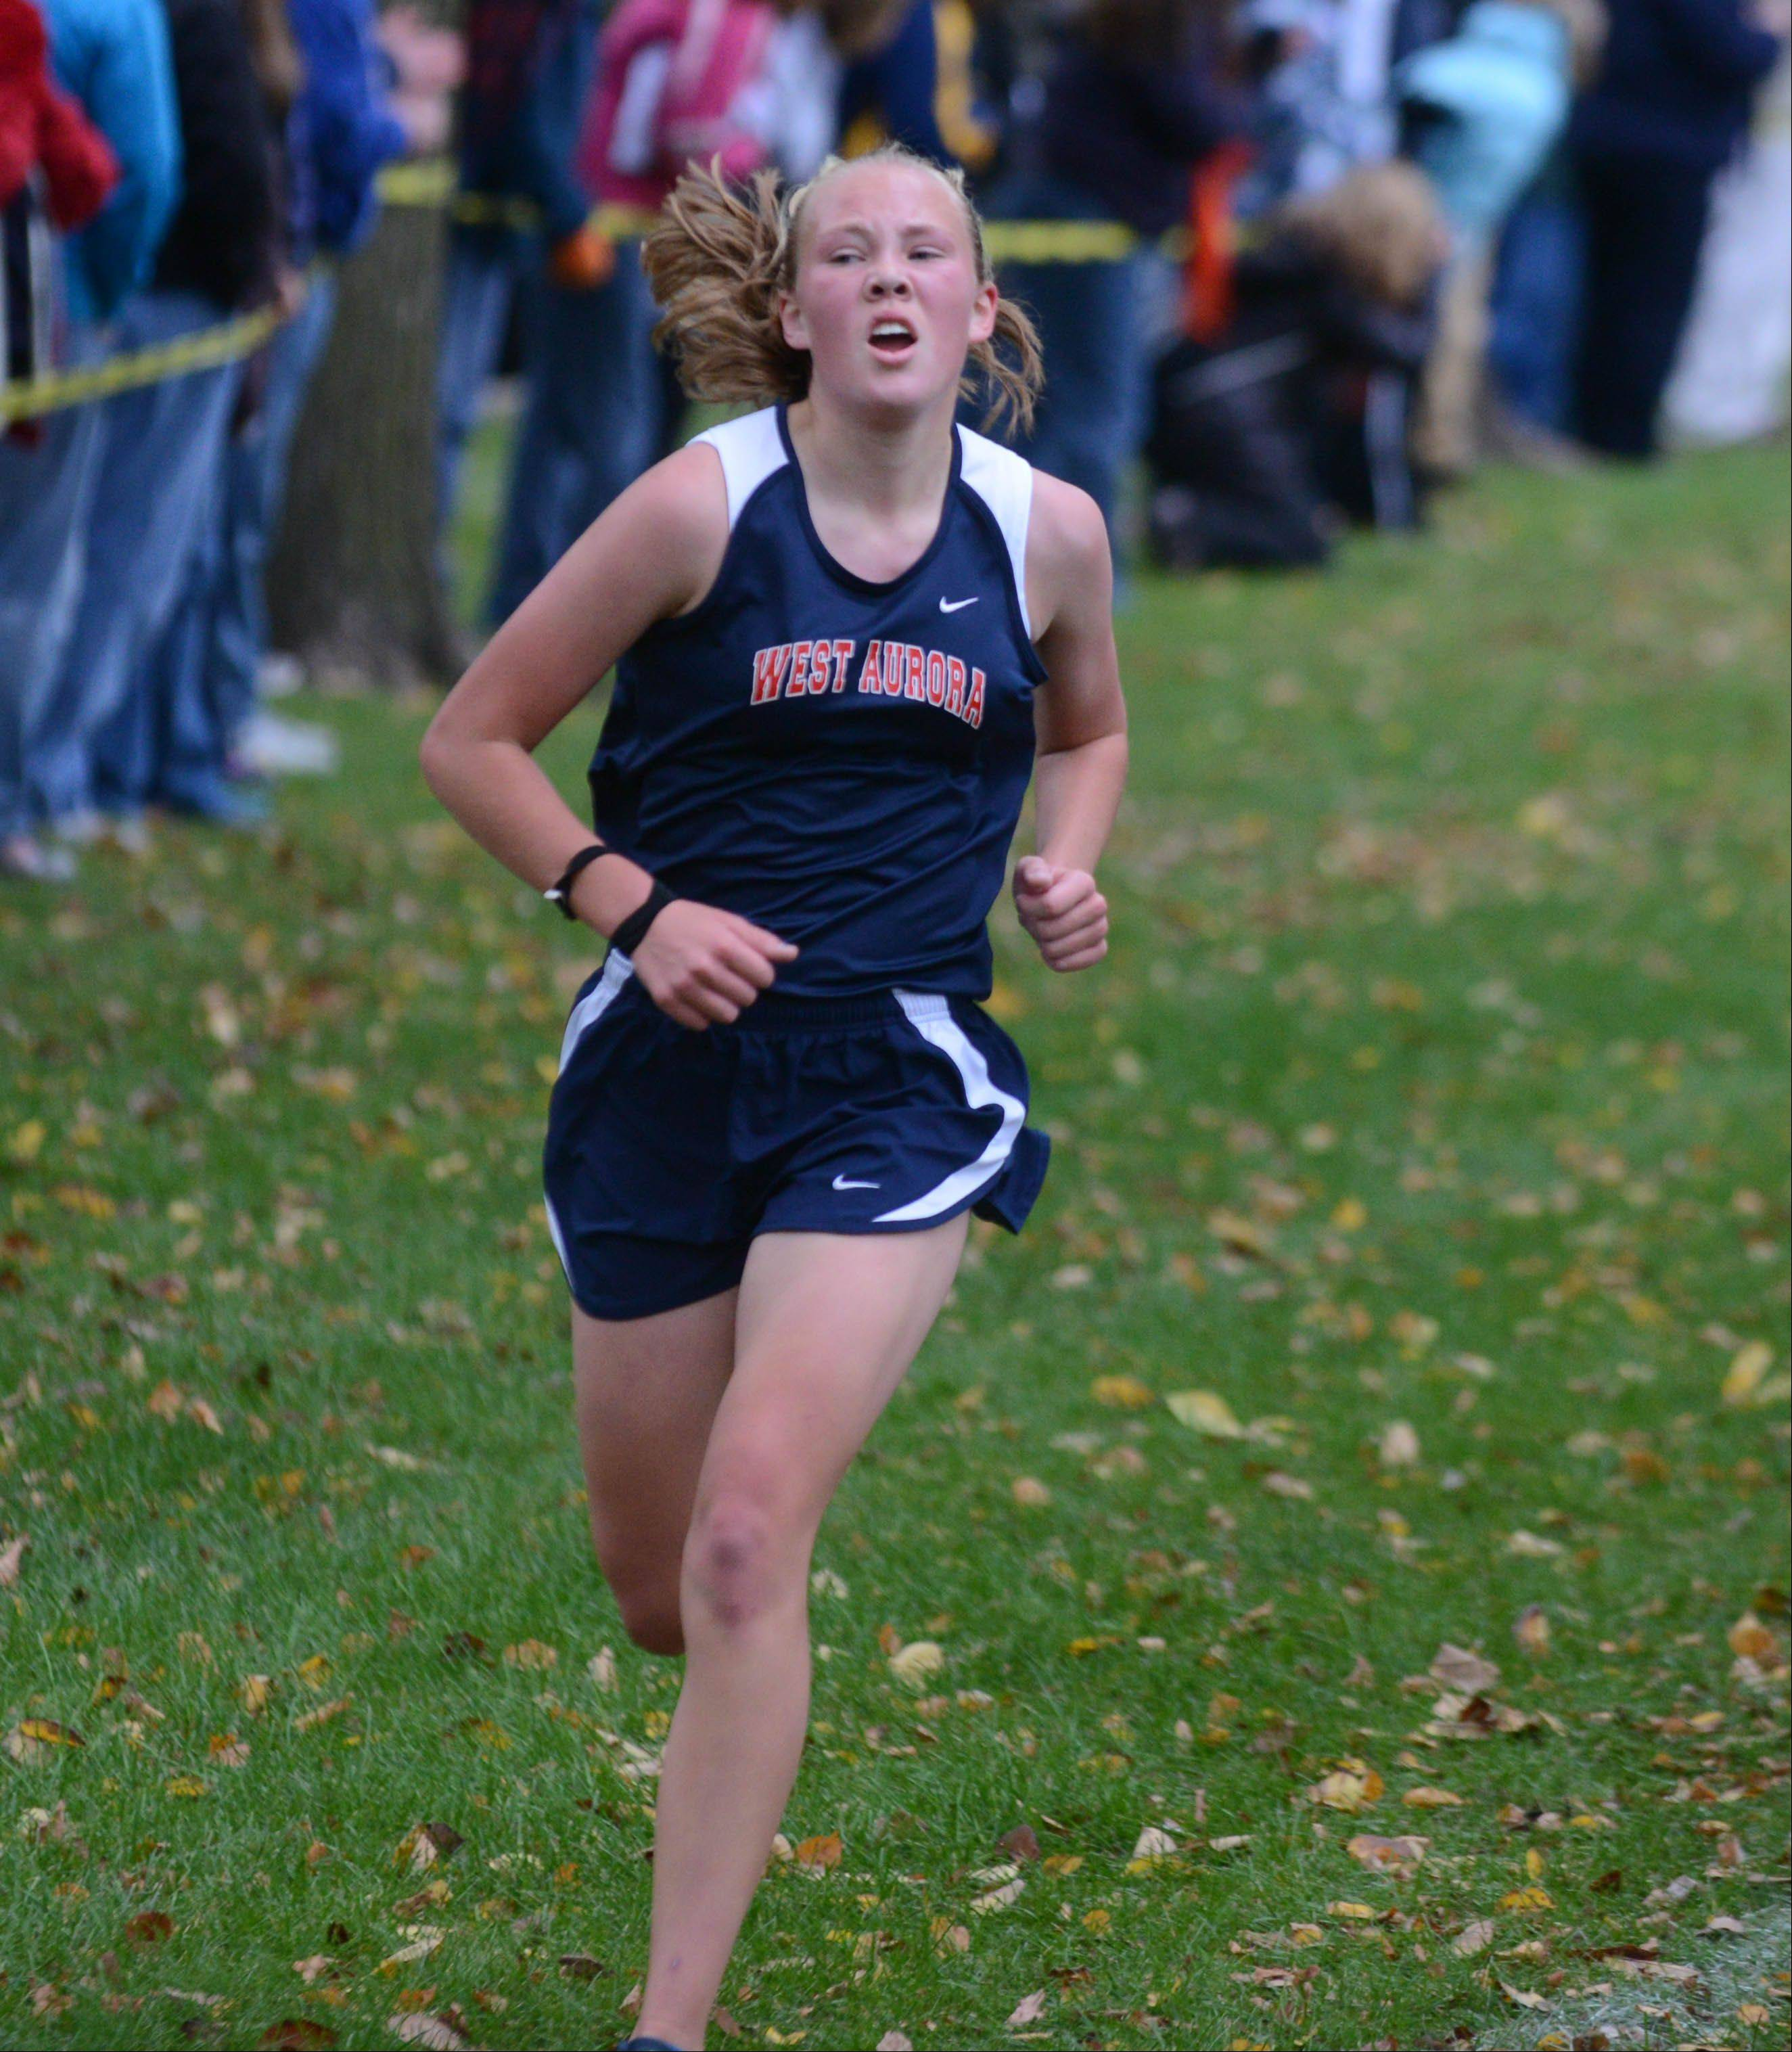 Taylor Truckenbrod of West Aurora took 15th at the DuPage Valley Conference boys and girls cross country meet Friday.